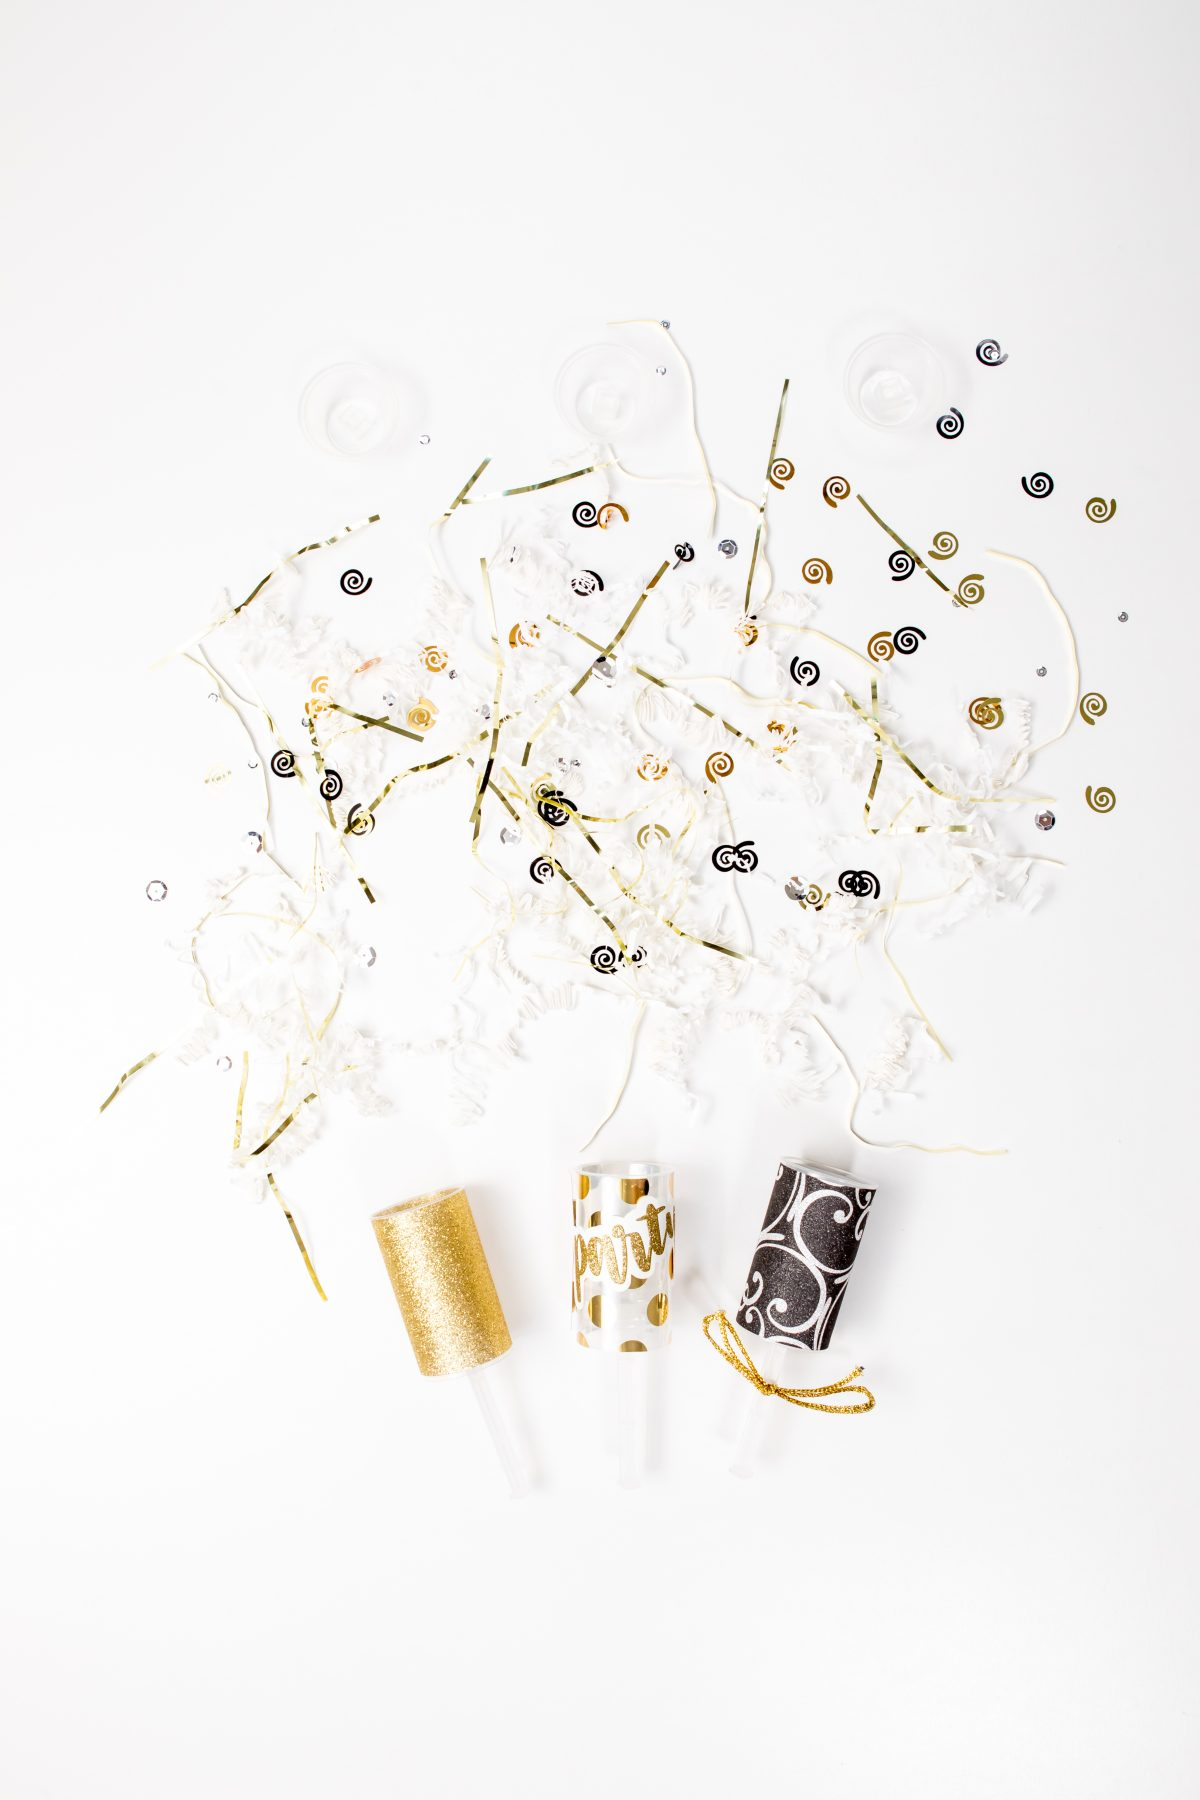 5D4B5122 - NYE Party Poppers